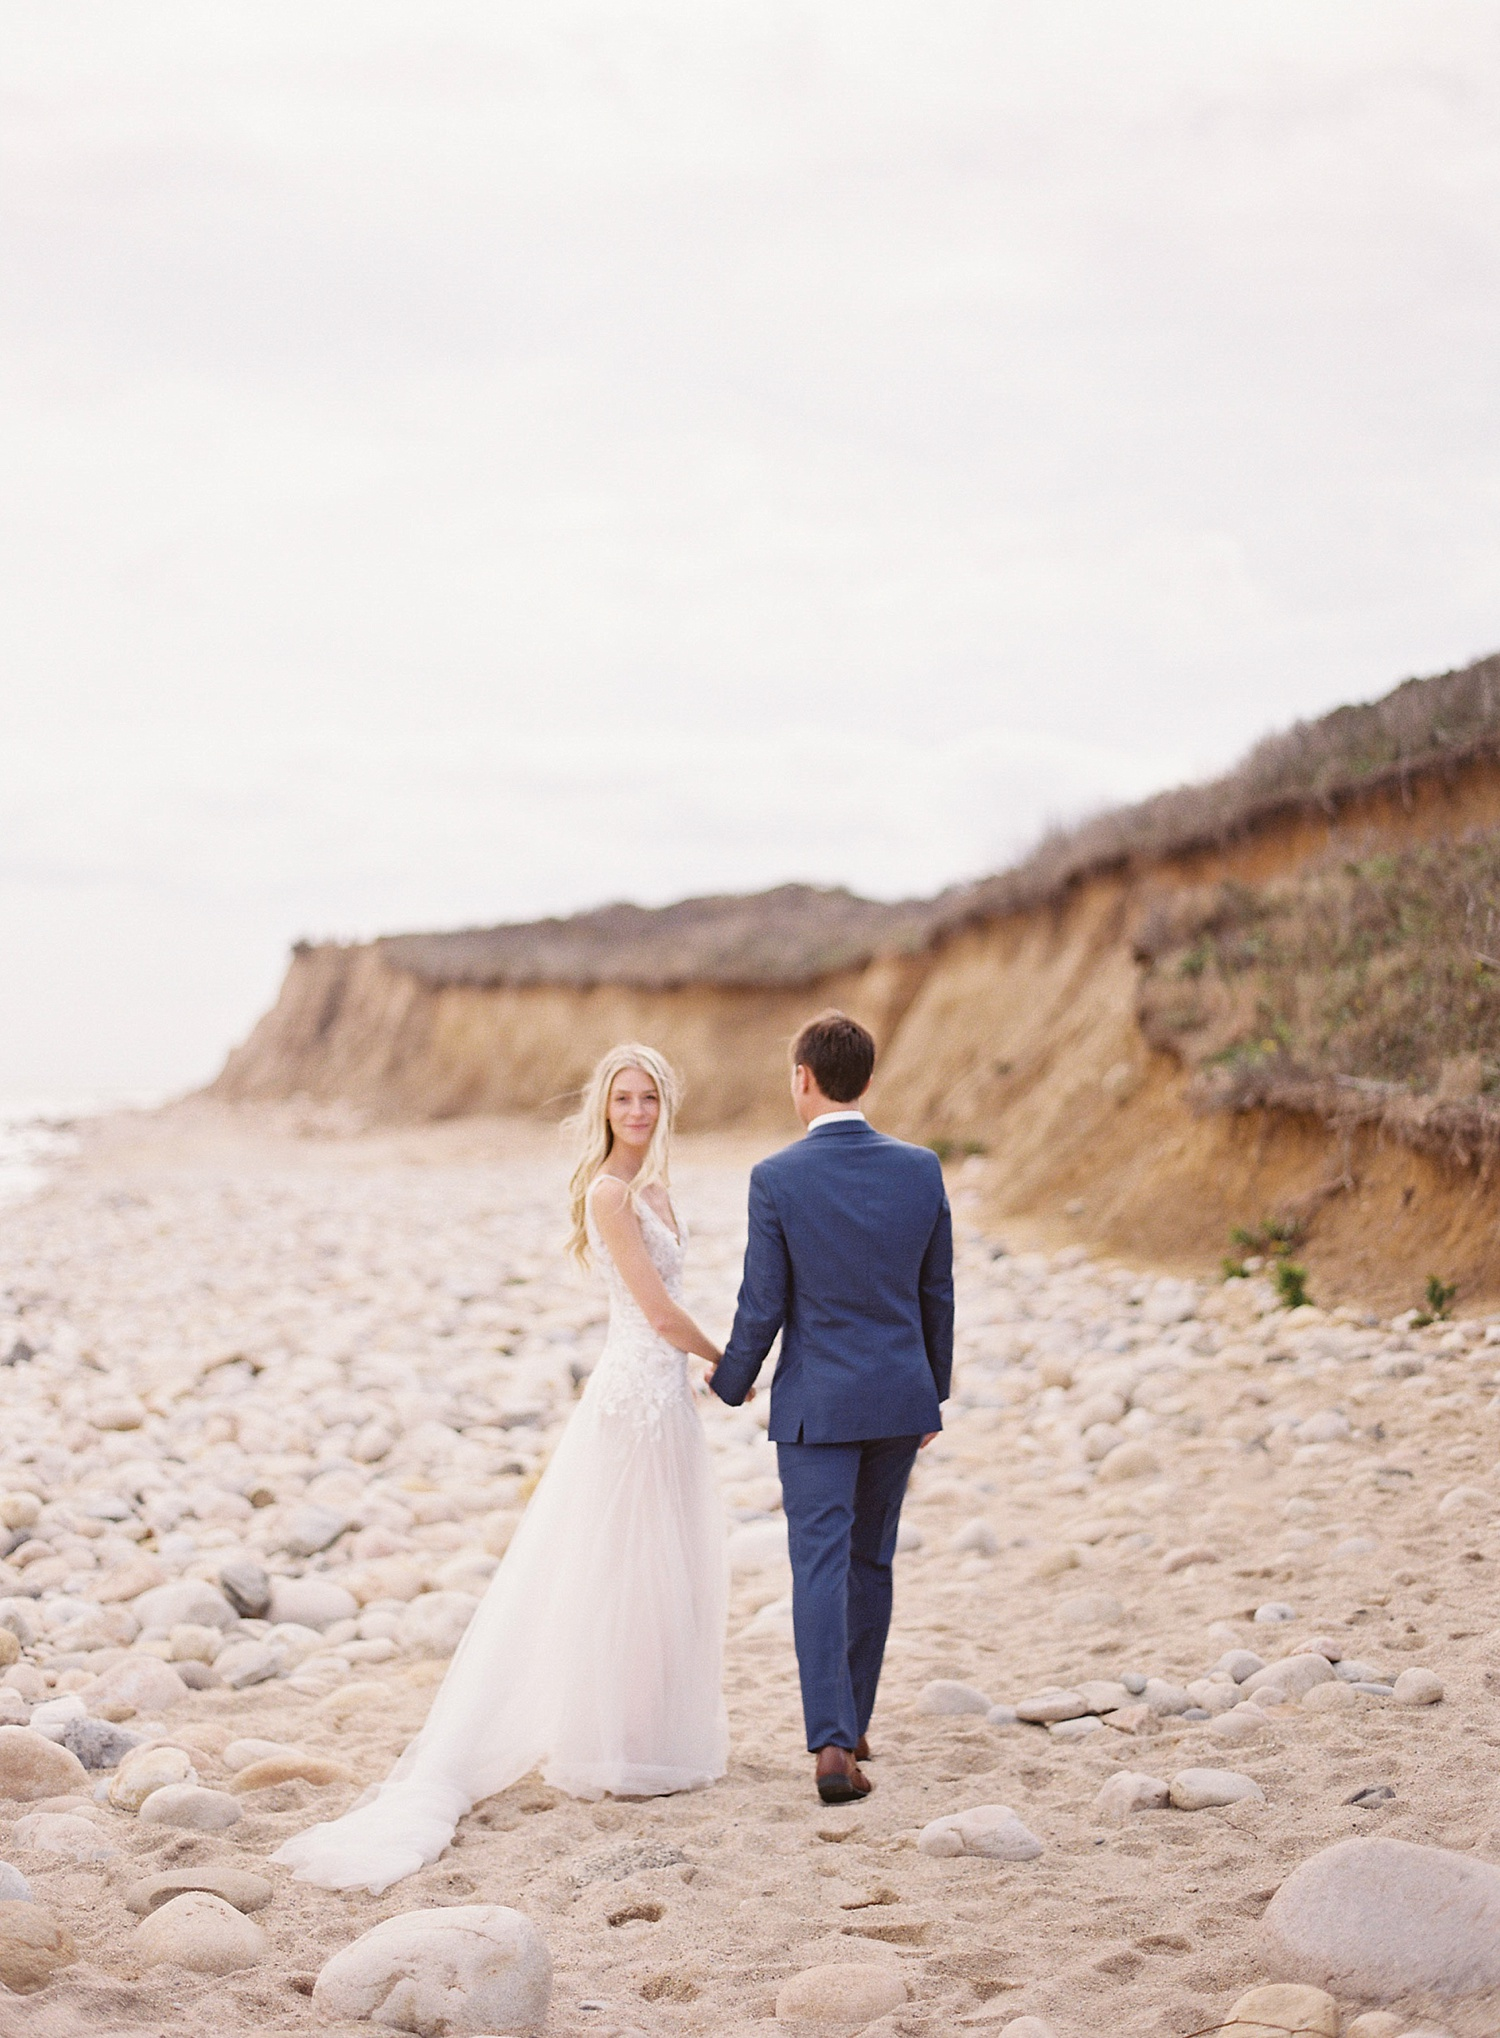 montauk_fall_wedding_16.jpg